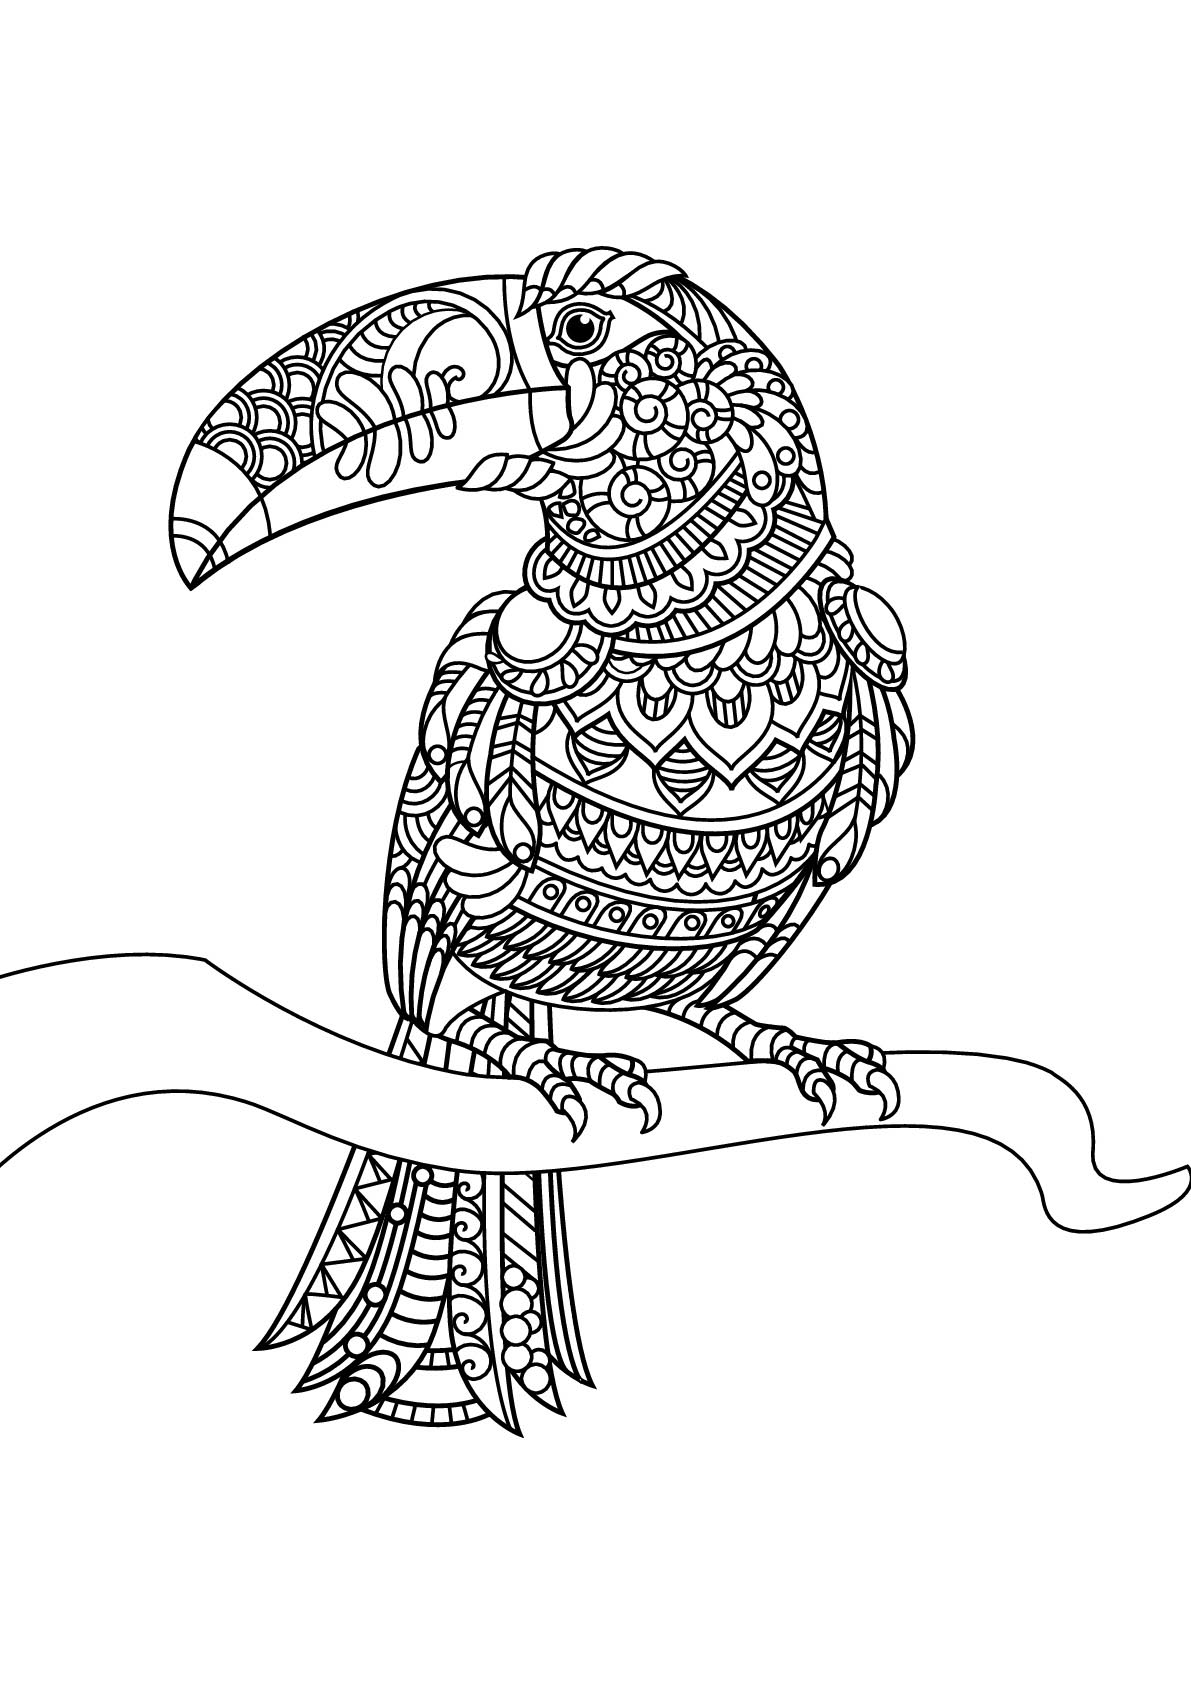 bird colouring pages for kids peacock coloring pages for kids colouring pages for kids bird